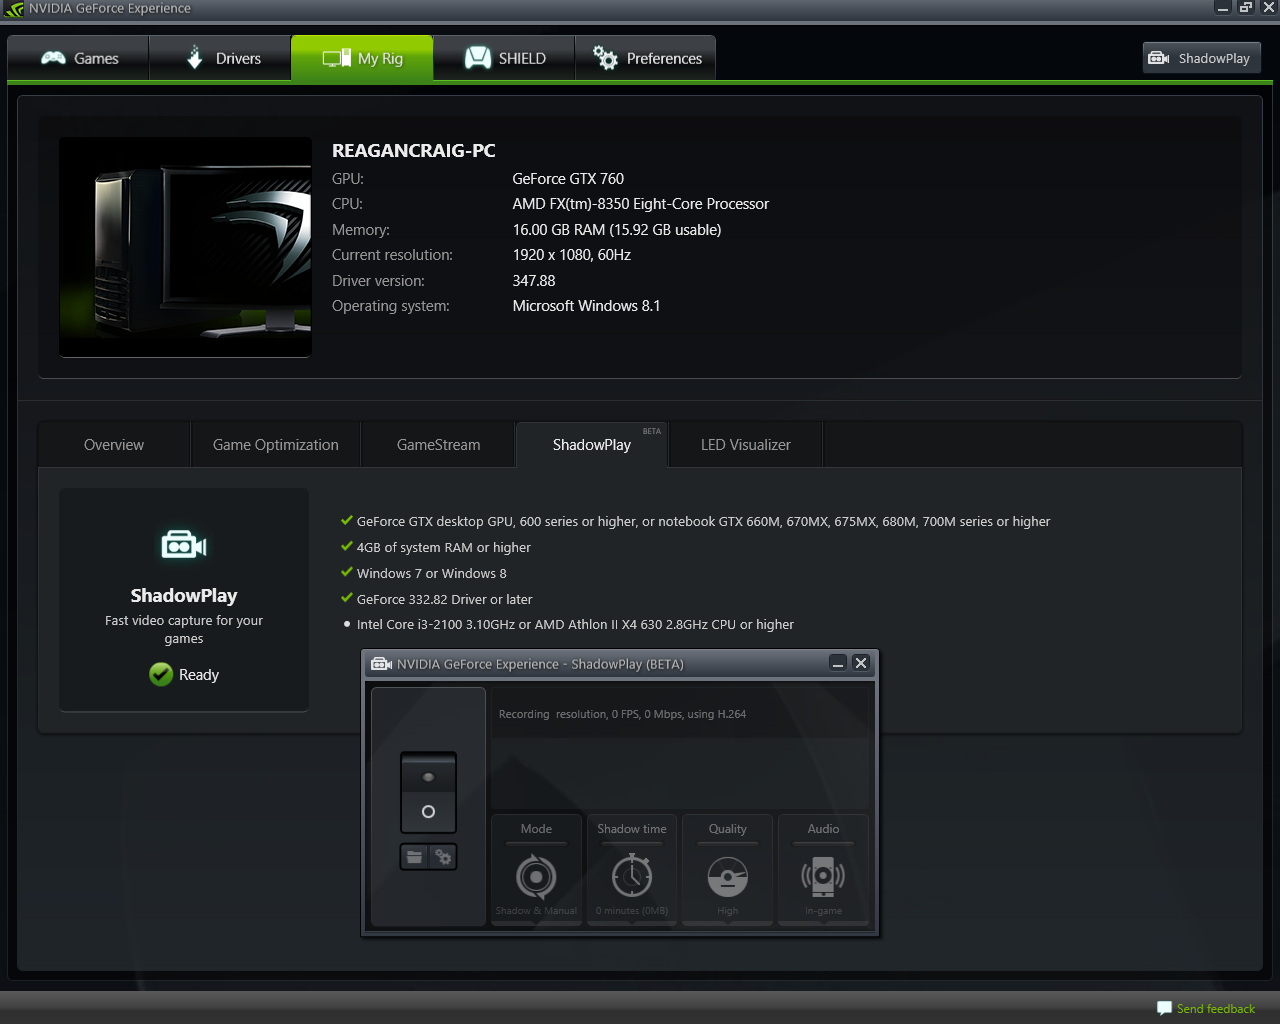 NVIDIA ShadowPlay - CPU not supported - FX8350